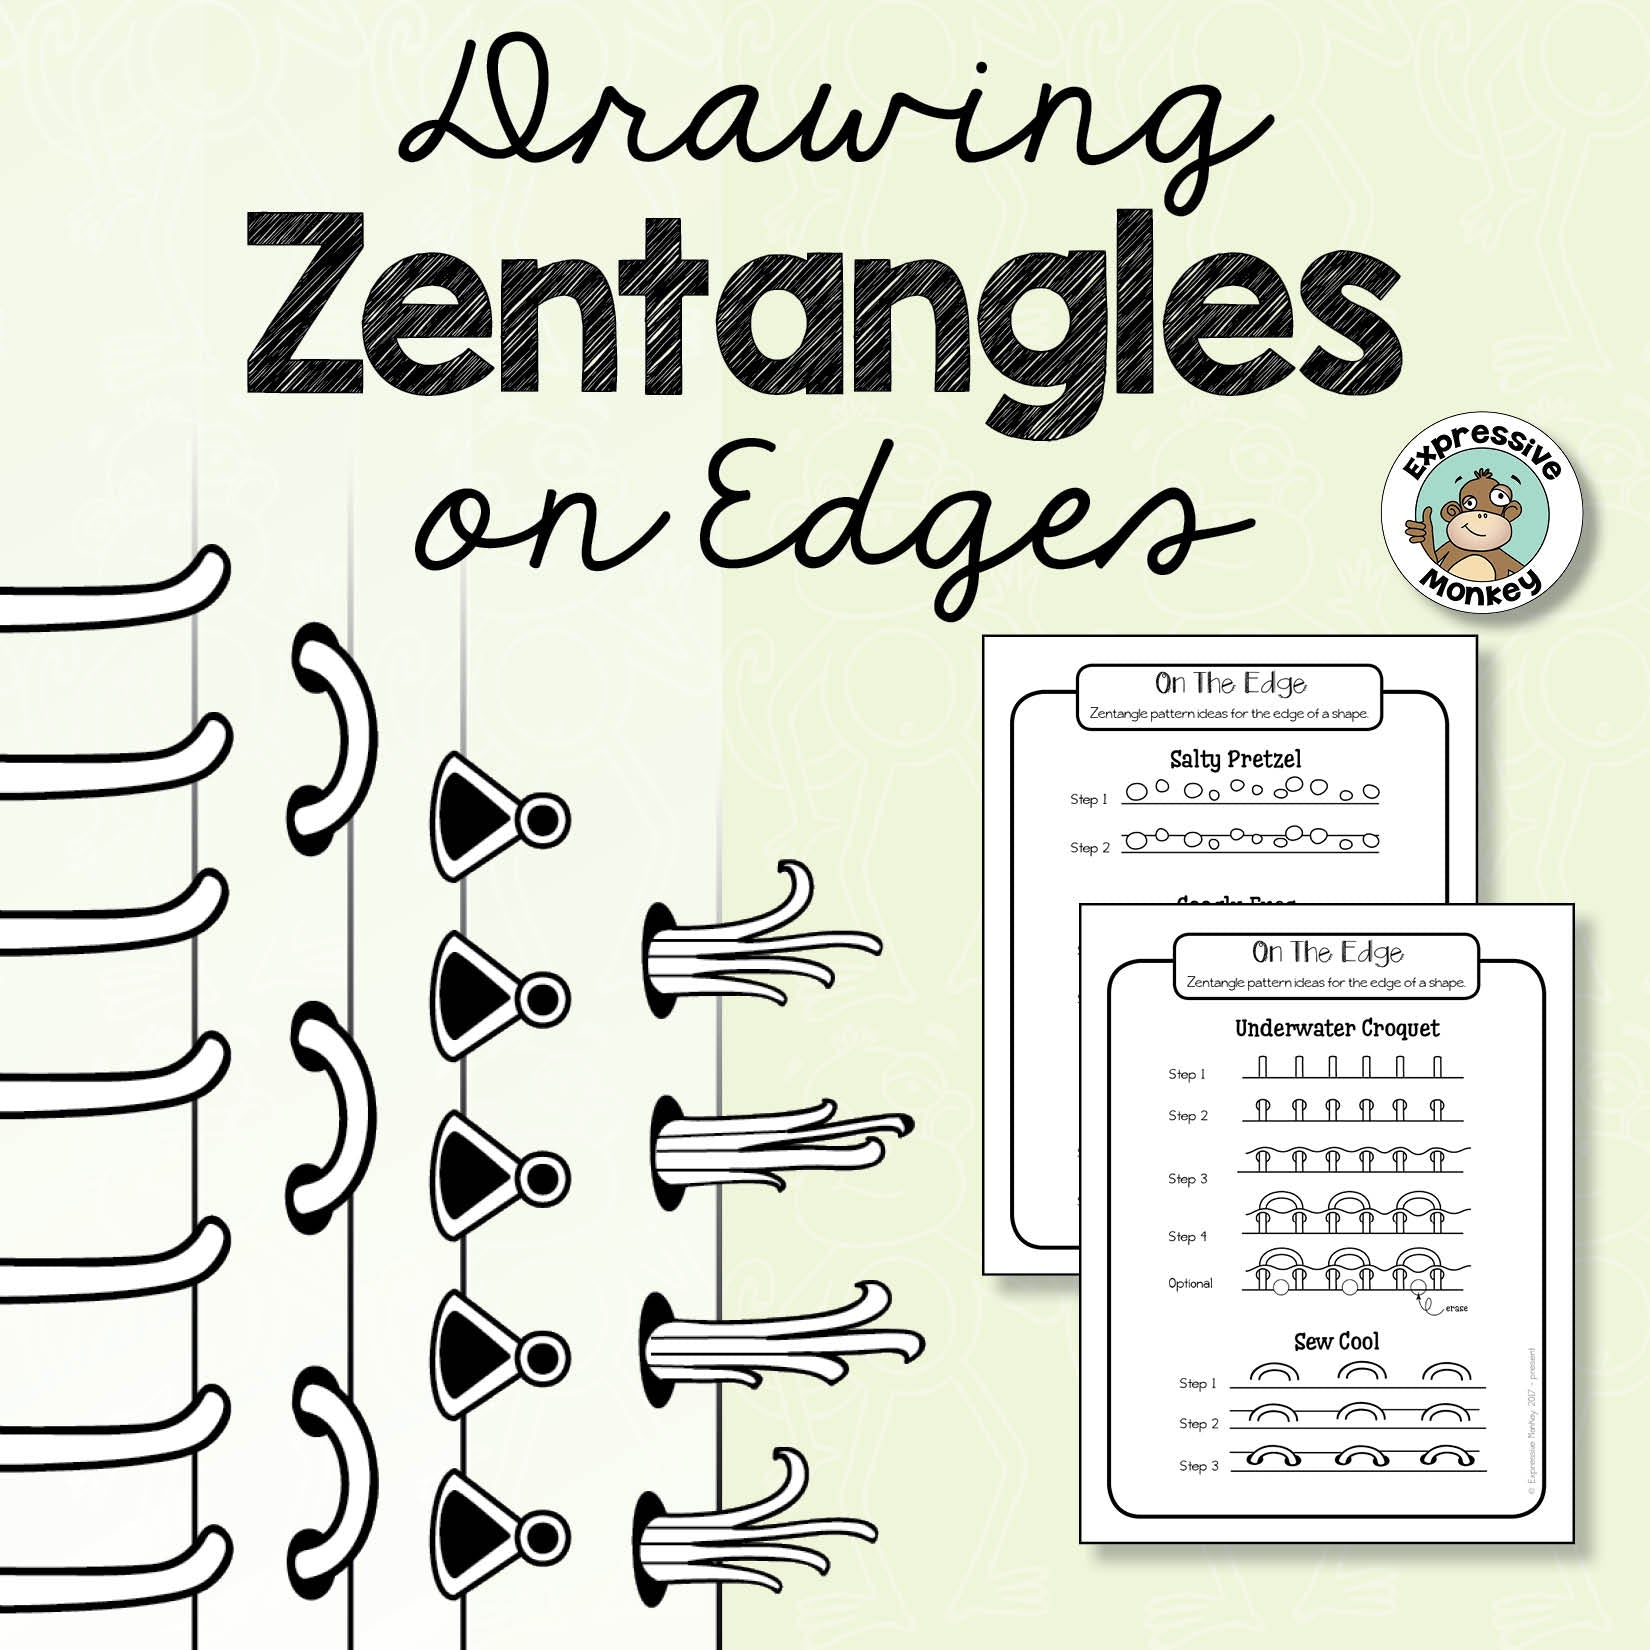 Drawing Zentangles on Edges Step by Step